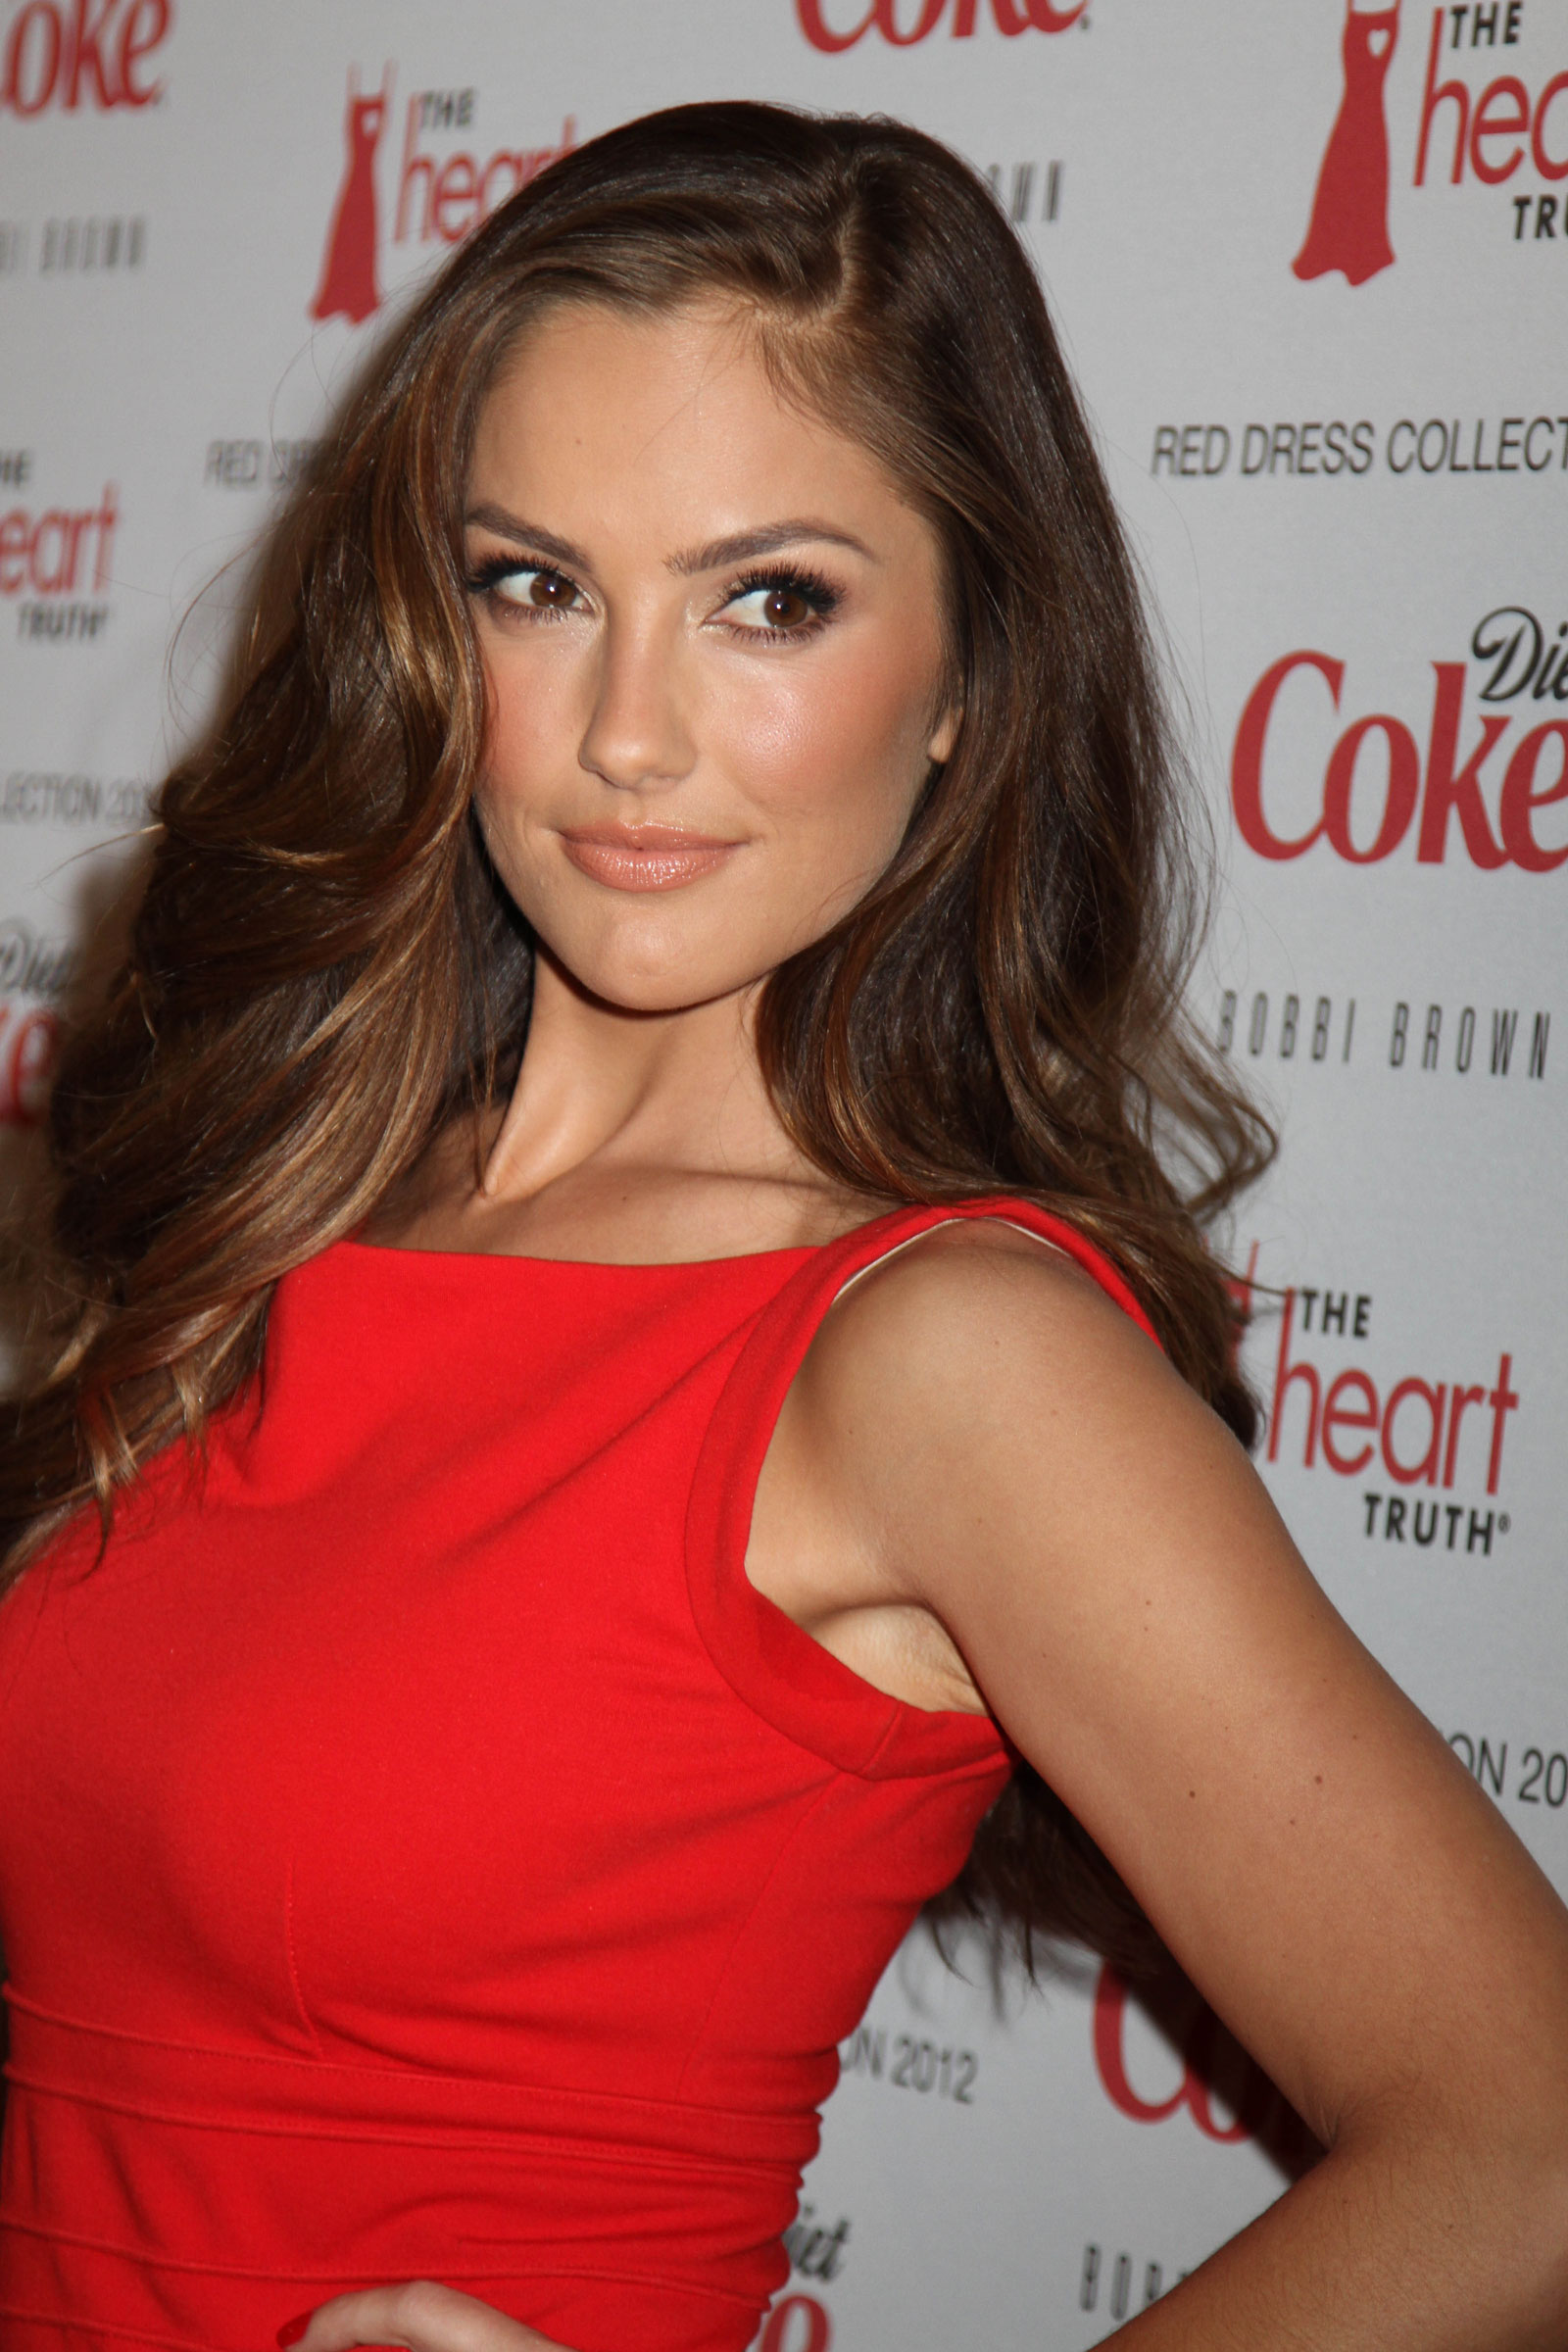 Minka Kelly At The Heart Truths Red Dress Collection 2012